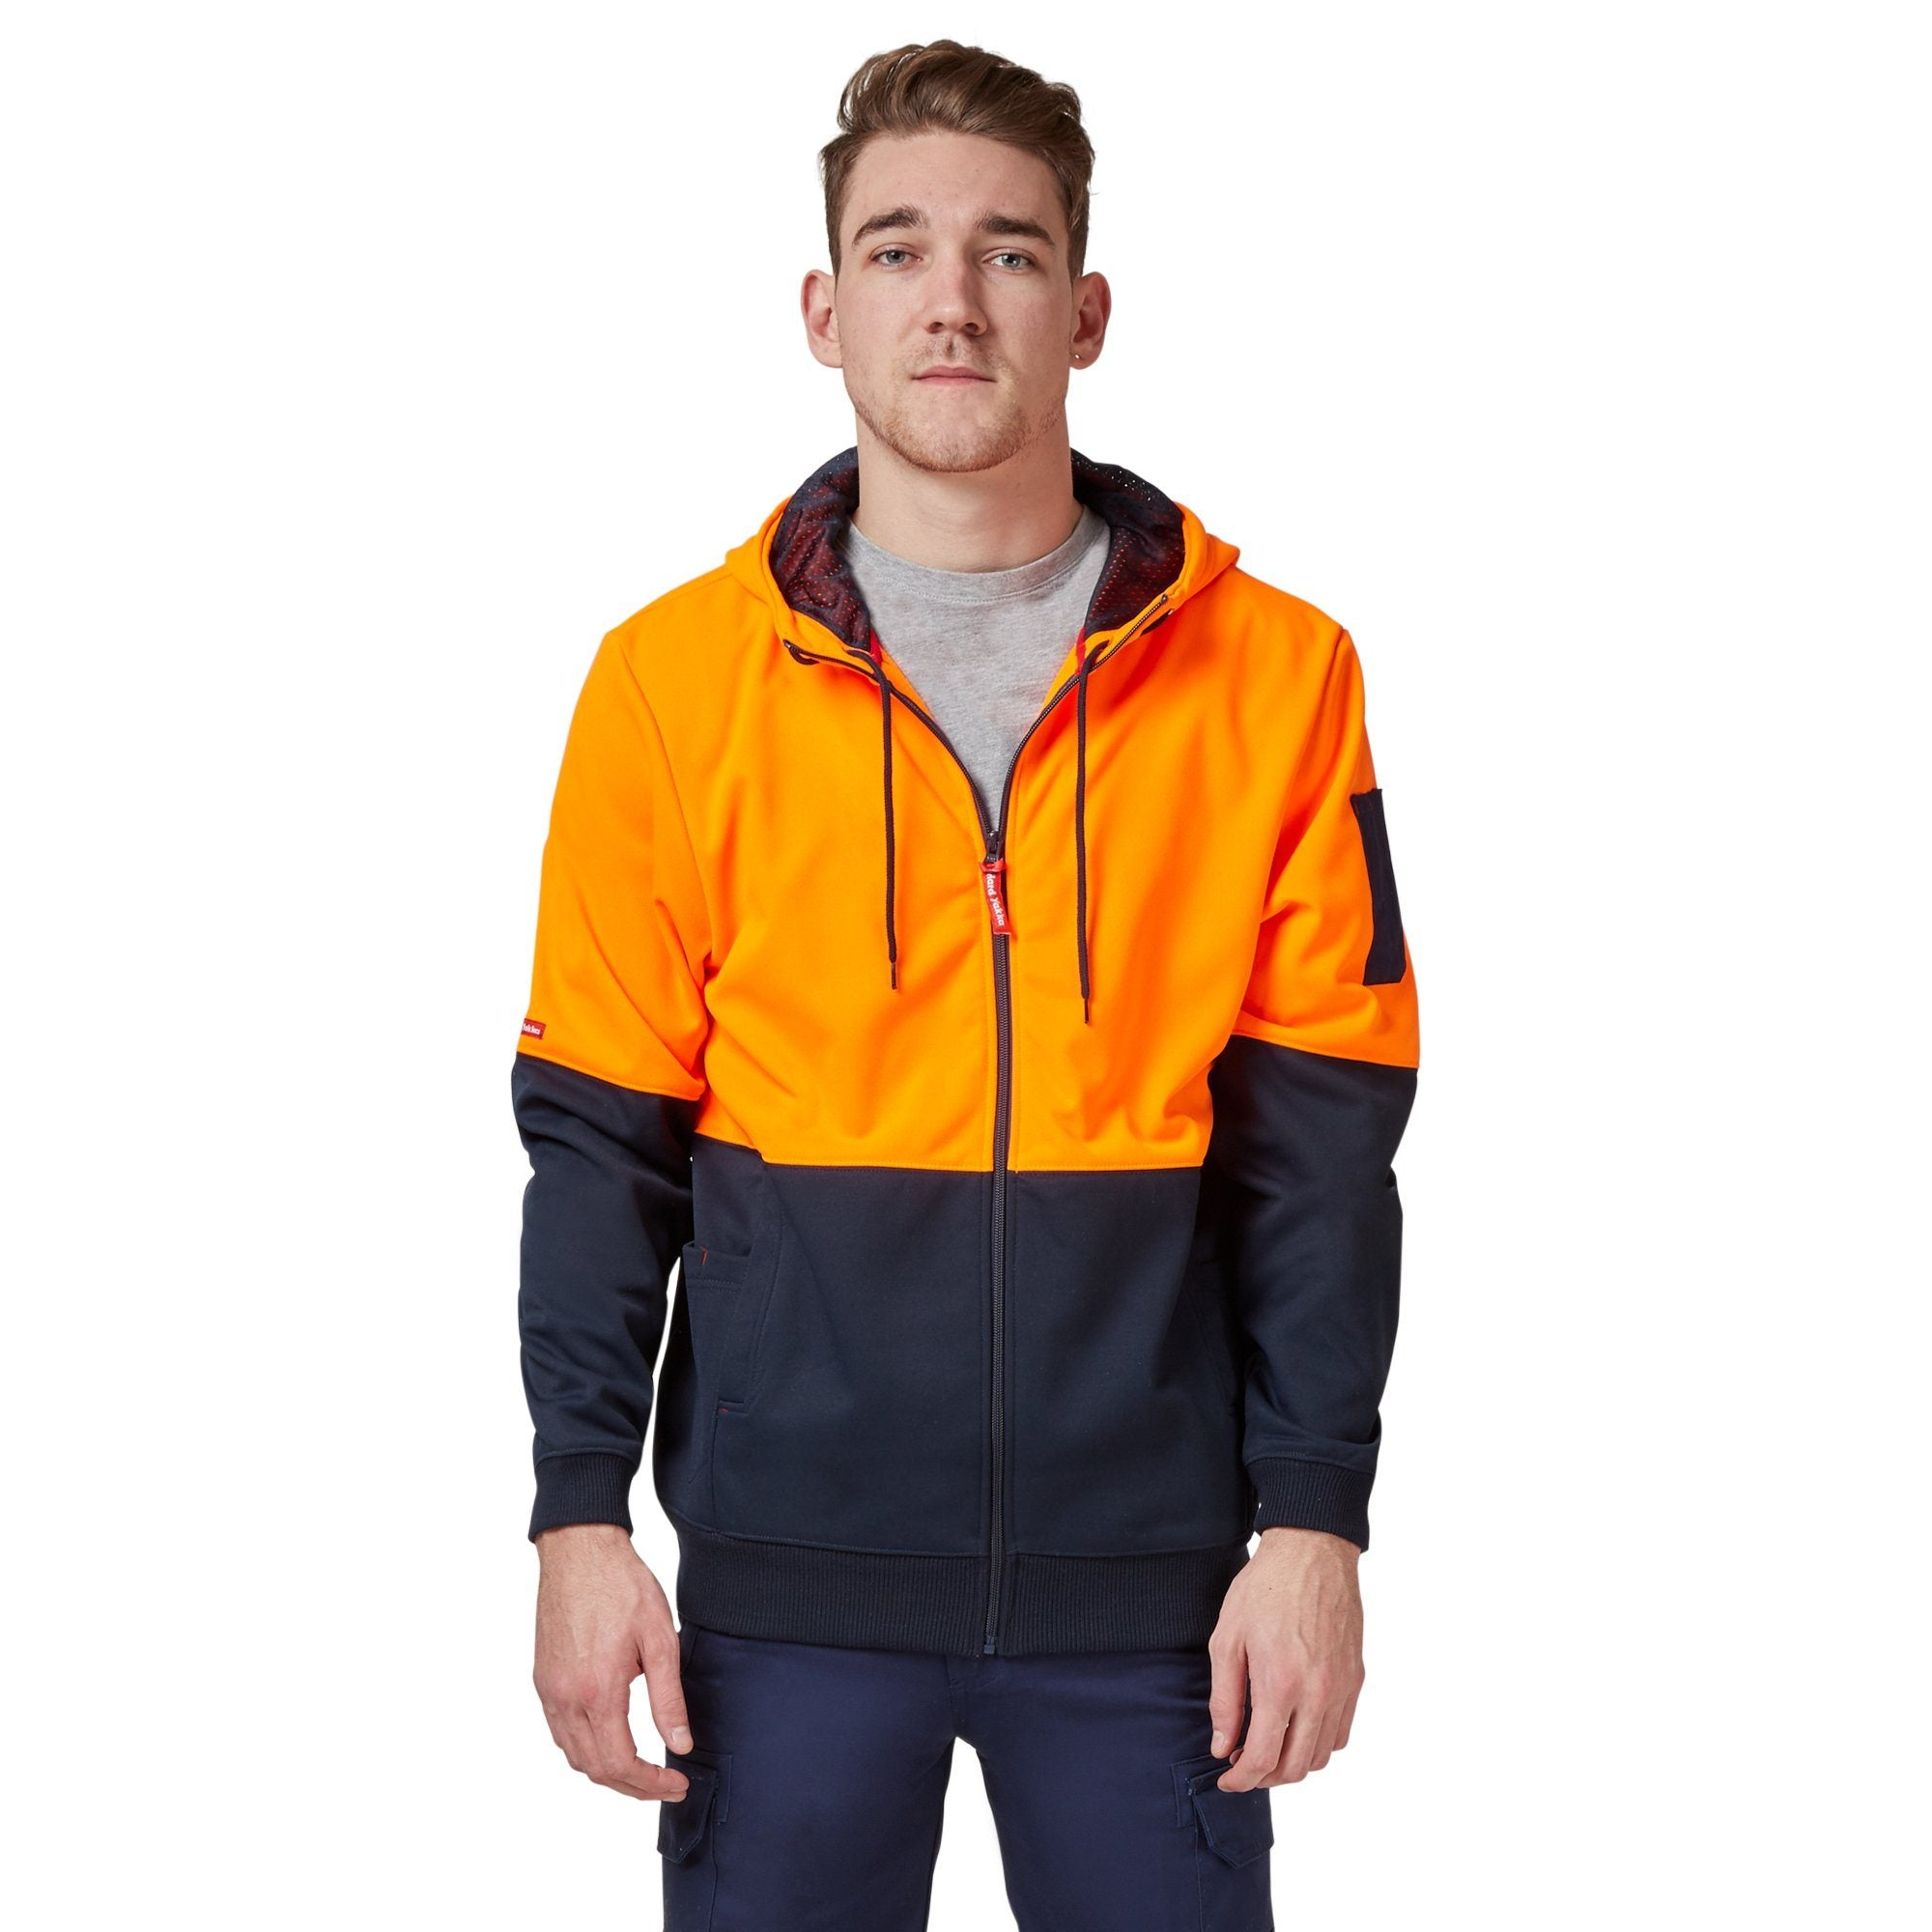 Hard Yakka Y19327 Hi-Vis Two Tone Brushed Fleece Full Zip Hoodie - Orange/Navy Workwear Isbister & Co Wholesale